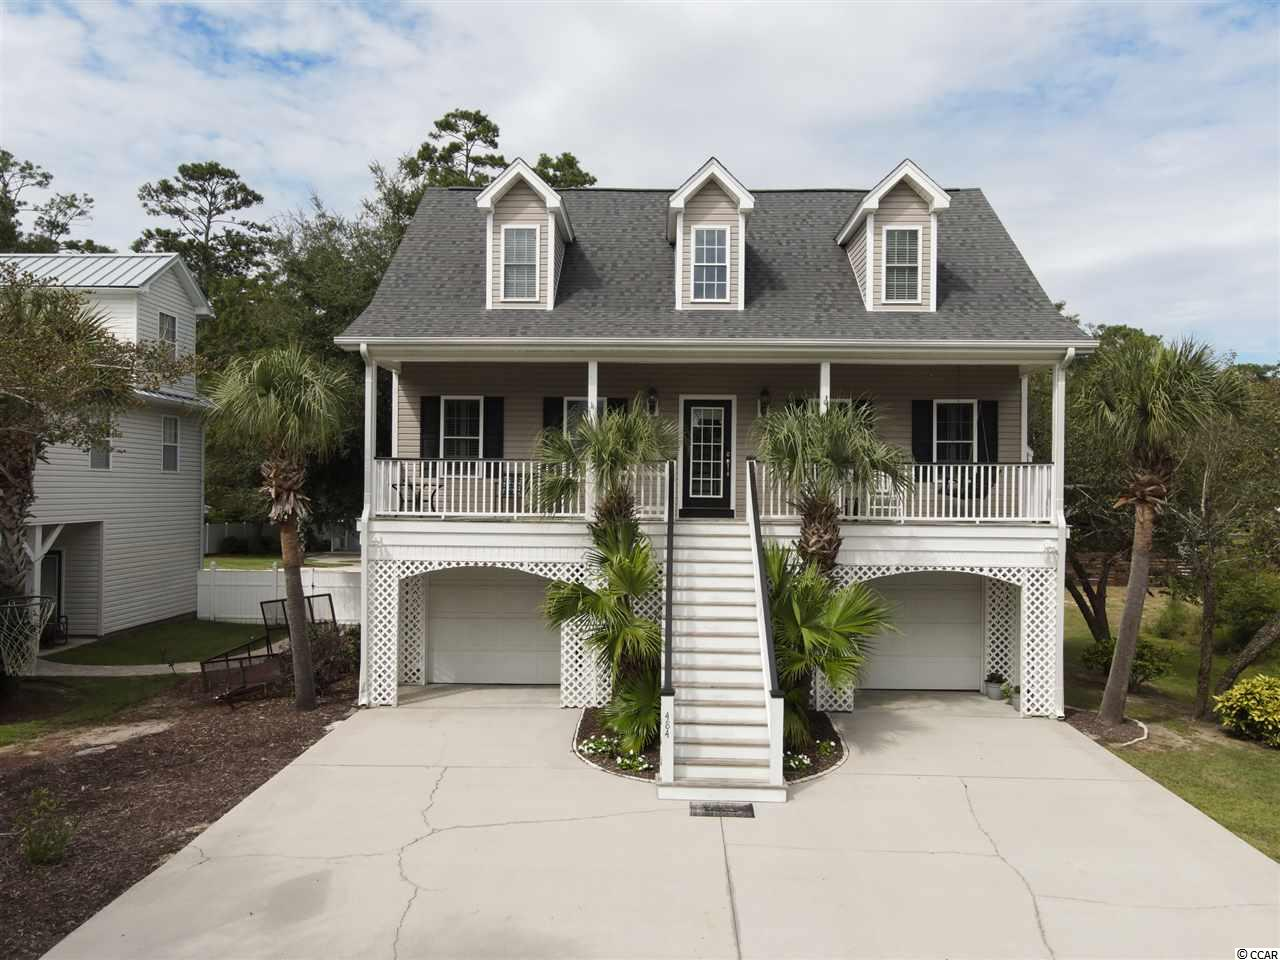 Just a short walk to the Marshwalk in Murrells Inlet and positioned on a rare, deep, fully fenced lot, this raised beach home is the retreat you have been looking for! A cozy porch with Inlet views welcomes you home on the main level where inside, a spacious living area with vaulted ceilings flows into the dining area and bright, naturally lit kitchen. A finished Carolina room provides a relaxing space with a screened in porch overlooking your beautiful pool and landscaped, tree lined backyard. Upstairs you'll have plenty of privacy with 2 large bedrooms boasting tons of natural light, plenty of closet space and a full bathroom. This raised beach home maximizes the outdoor space with plenty of room to store your boat, golf cart, kayaks and much more inside of the 2 car garage and storage closet. The garage leads you into a fully finished rec room on the ground level that can be used as a man cave, extra bedroom or living area, complete with a full bathroom. You won't find another home like this one. Start enjoying the inlet life today!